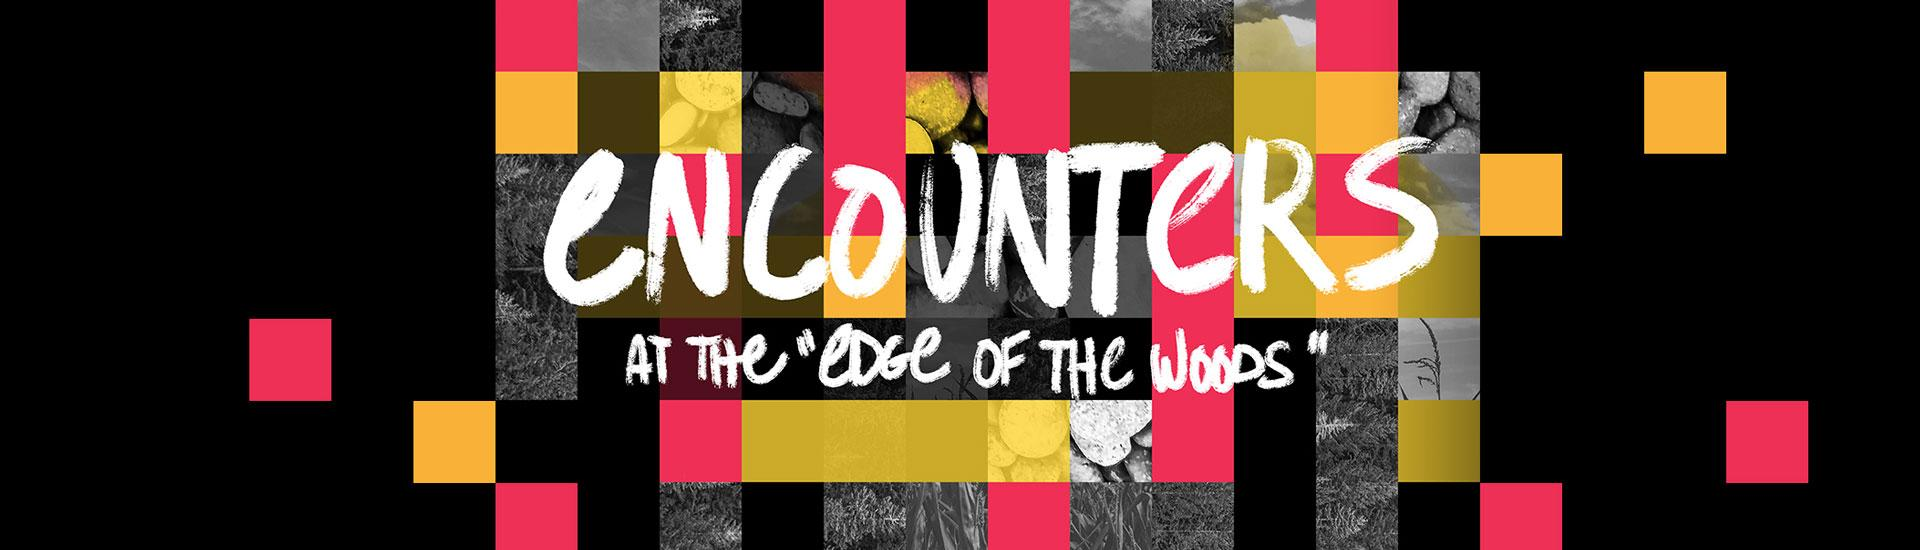 """Encounters at the """"Edge of the Woods"""" graphic"""